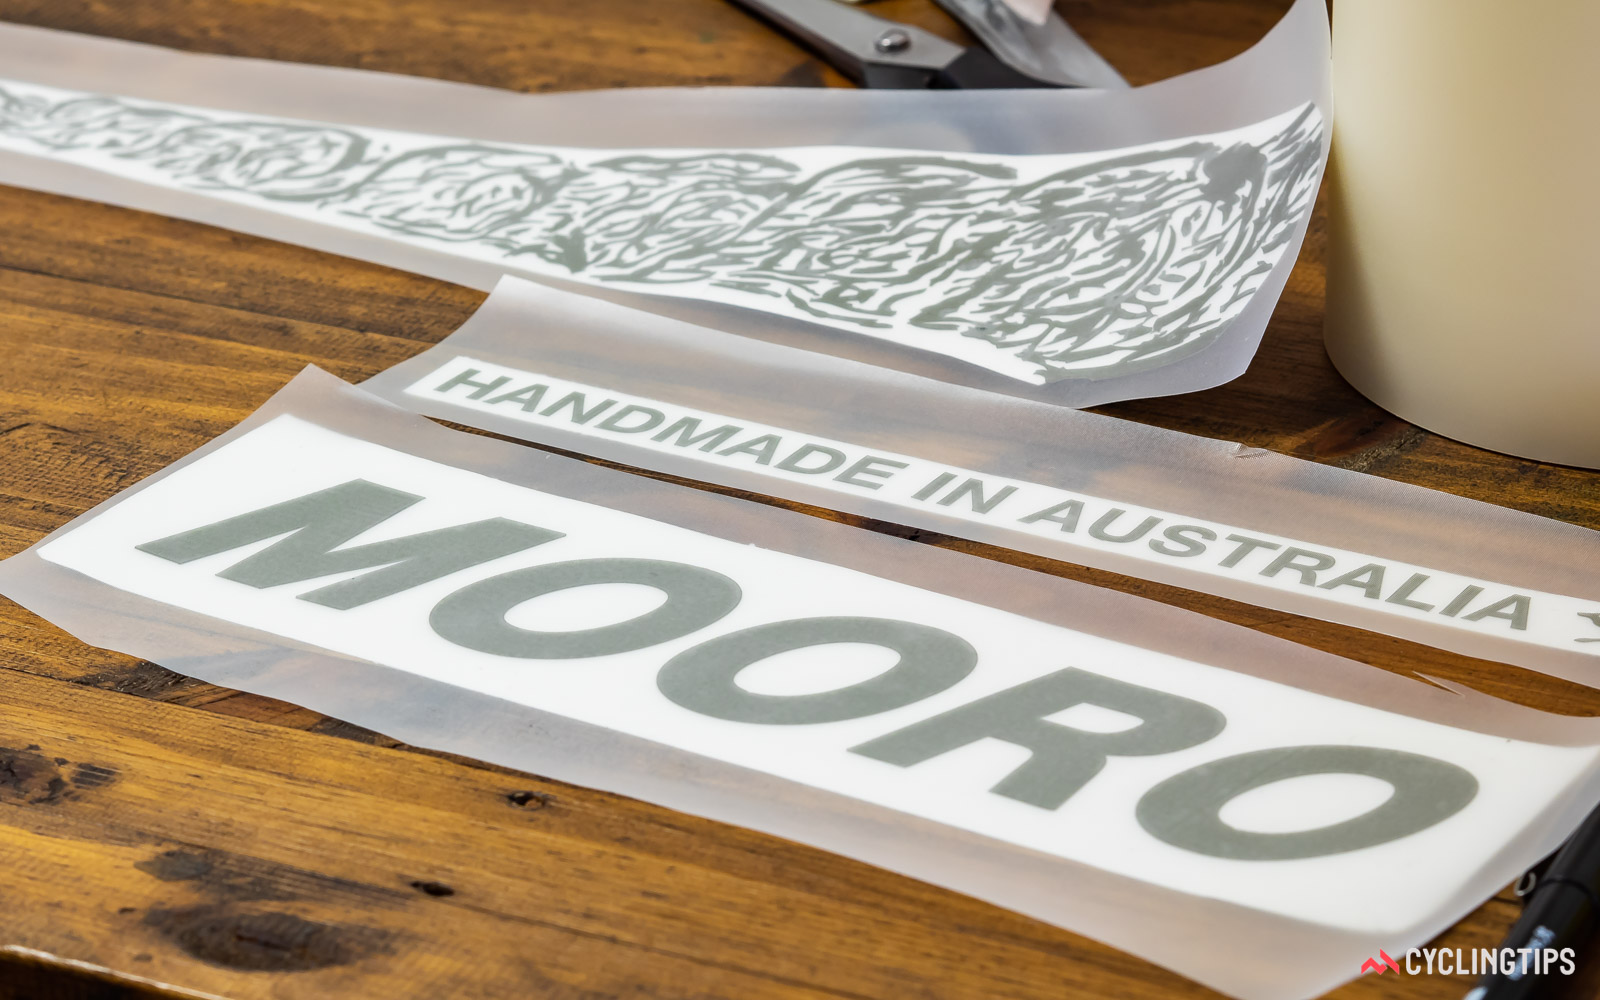 Masks for rendering anodised logos on a titanium frame